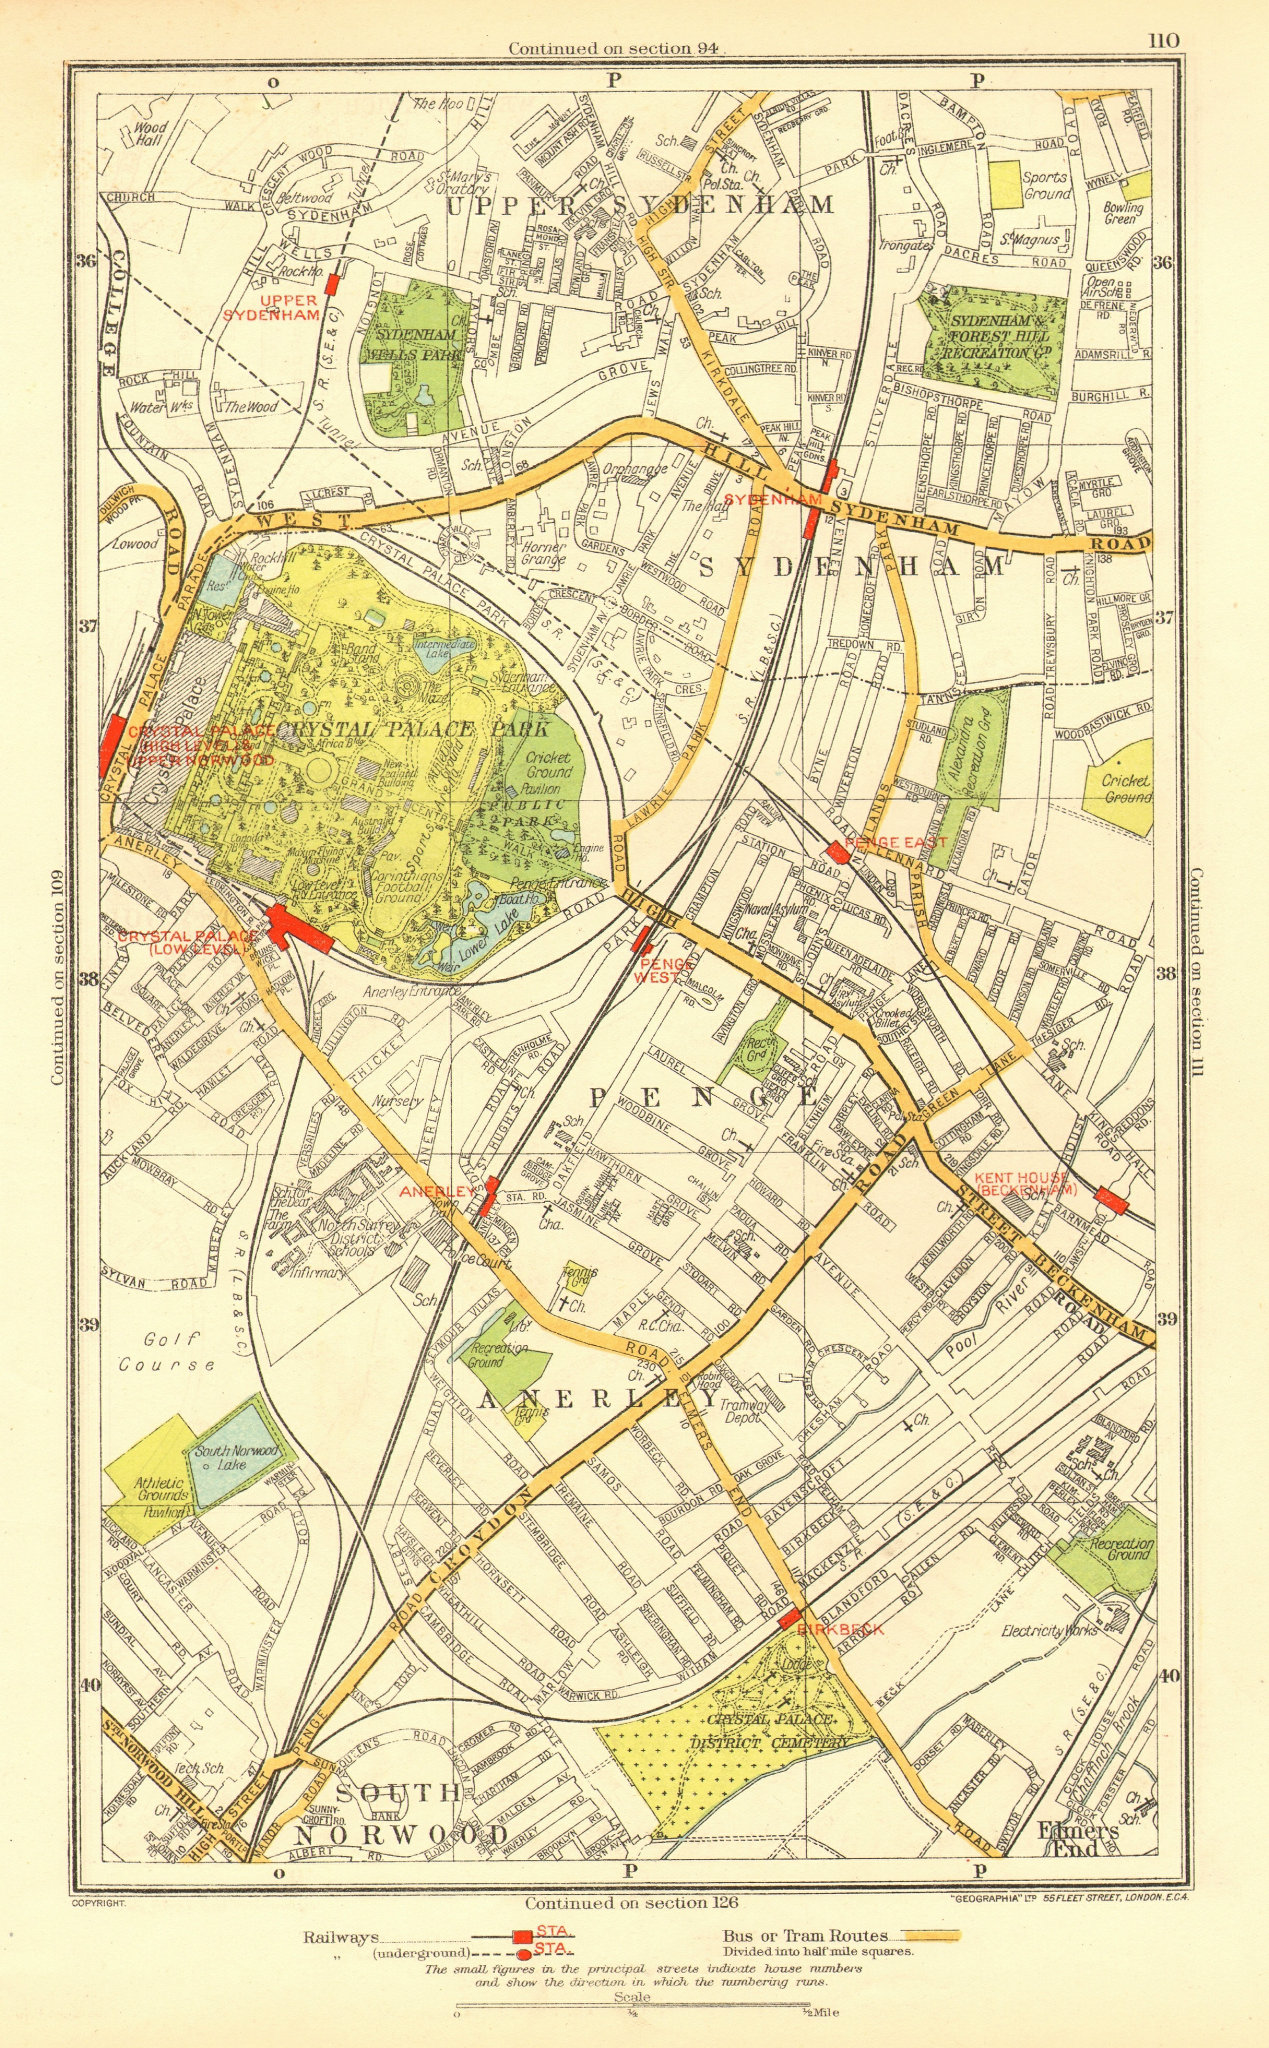 Associate Product SYDENHAM. Anerley Elmers End Penge Crystal Palace Upper Norwood 1937 old map